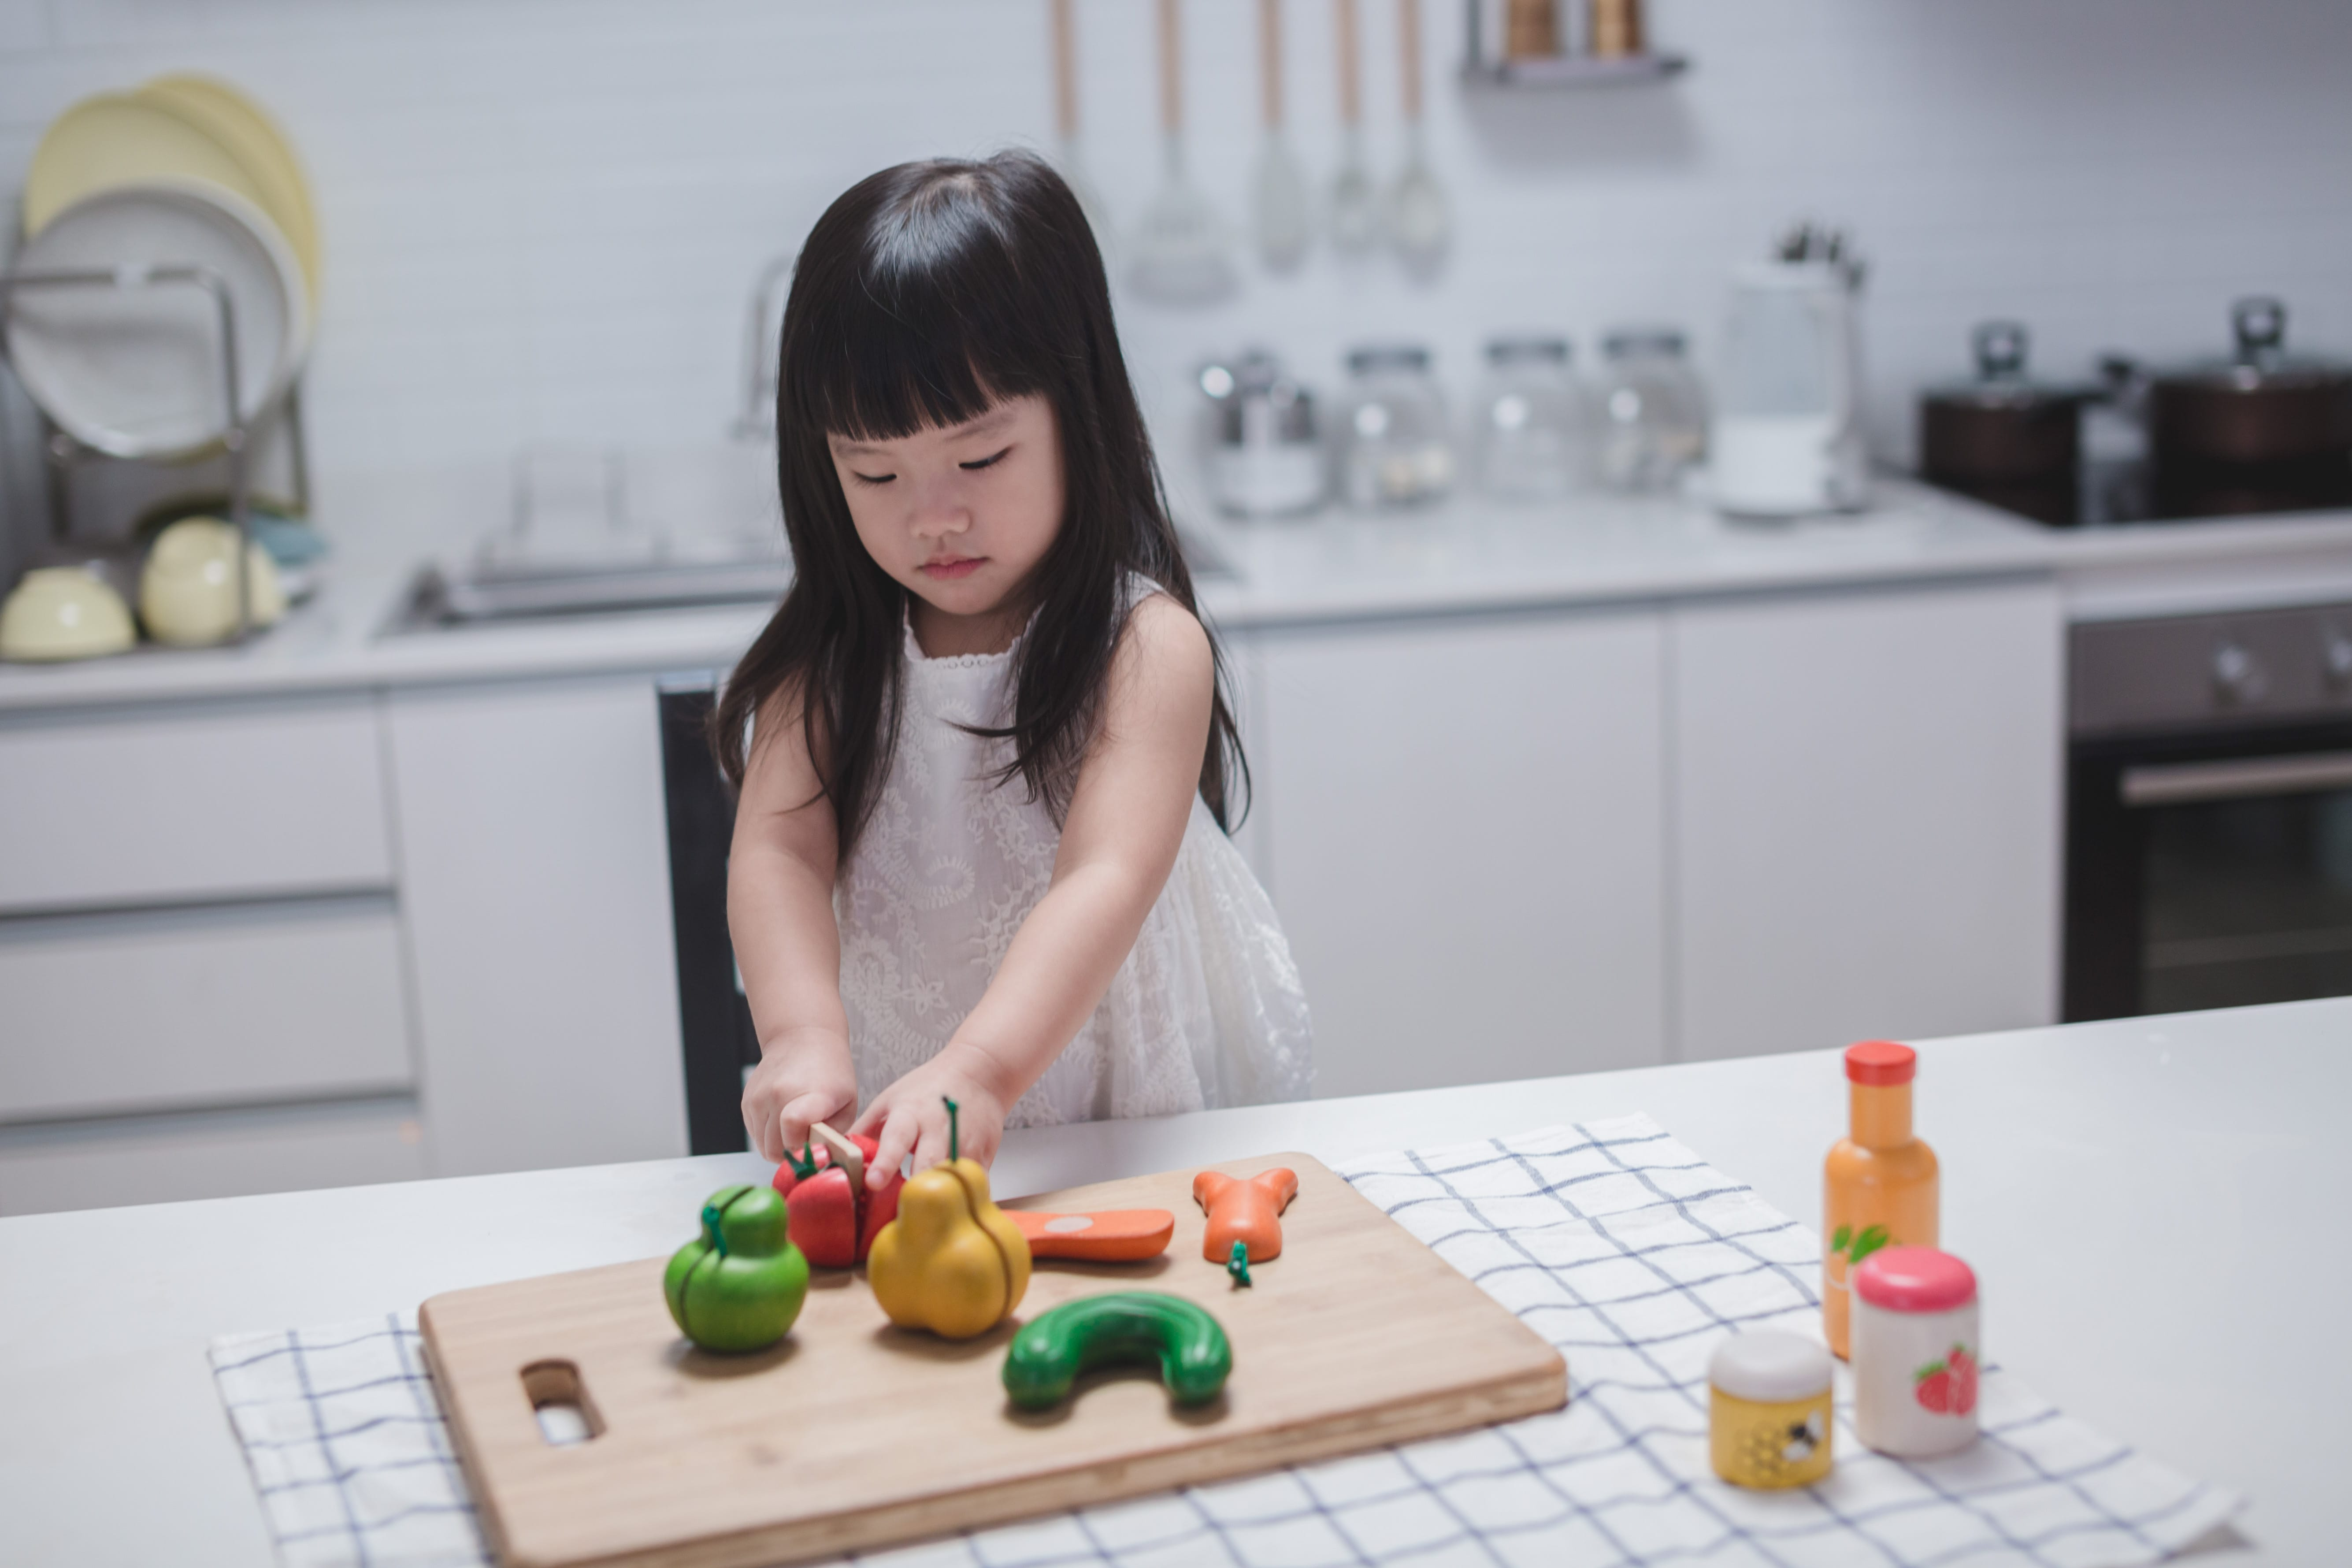 3432_PlanToys_FOOD_and_BEVERAGE_SET_Pretend_Play_Imagination_Language_and_Communications_Social_Fine_Motor_3yrs_Wooden_toys_Education_toys_Safety_Toys_Non-toxic_4.jpg